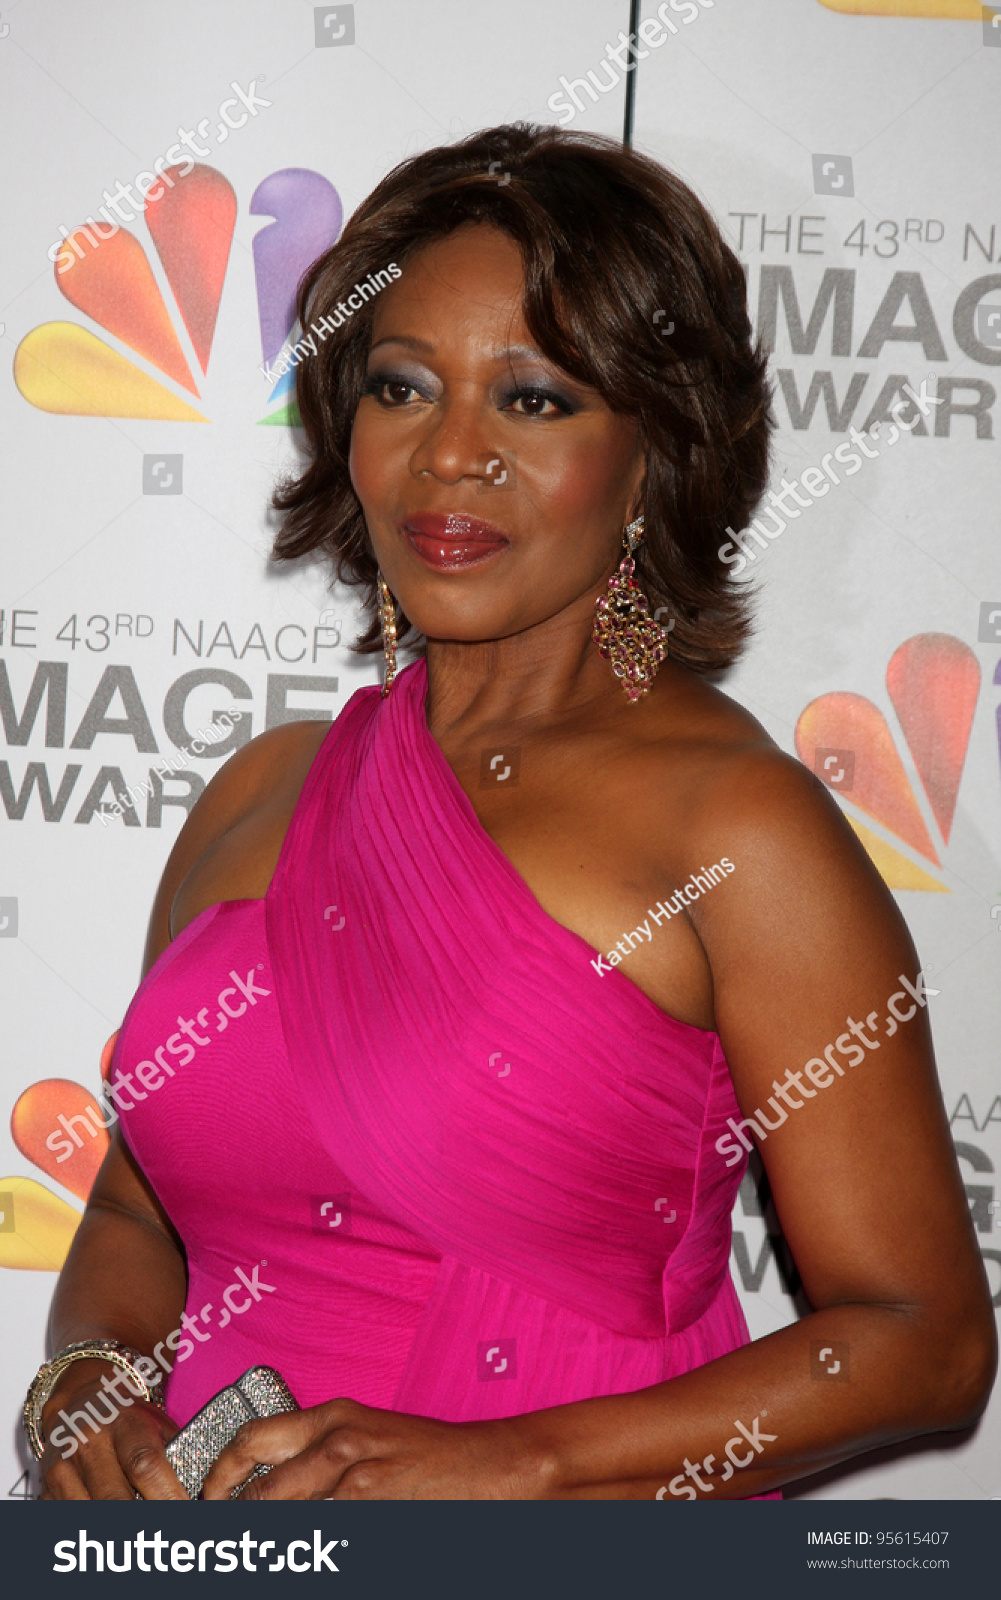 LOS ANGELES - FEB 17: Alfre Woodard arrives at the 43rd NAACP Image Awards  at the Shrine Auditorium on February 17, 2012 in Los Angeles, CA.